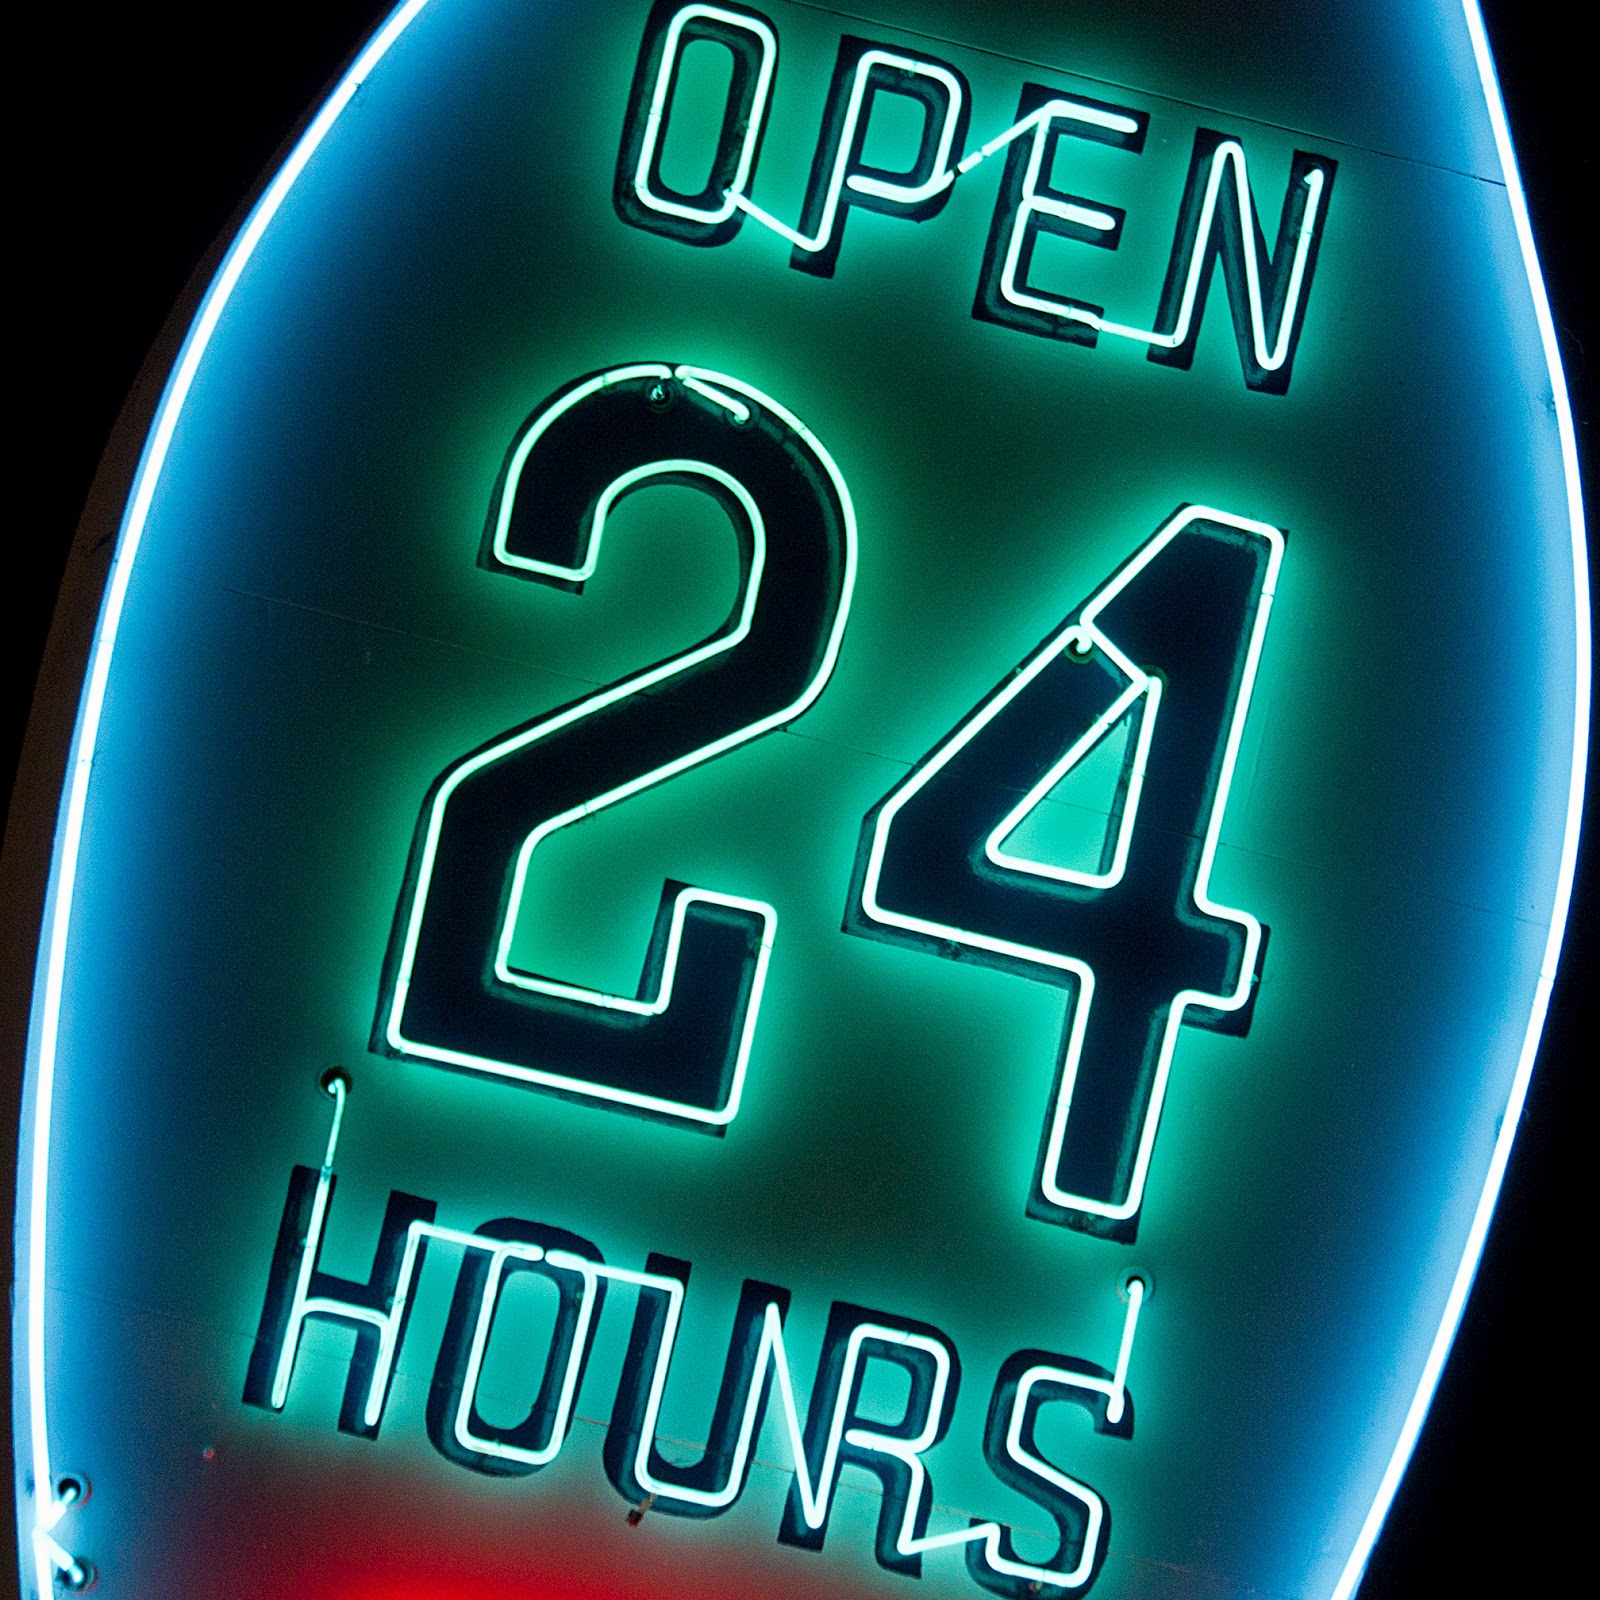 24 Outlet Our 24 Hour Convenience Outlet Alton Convenience